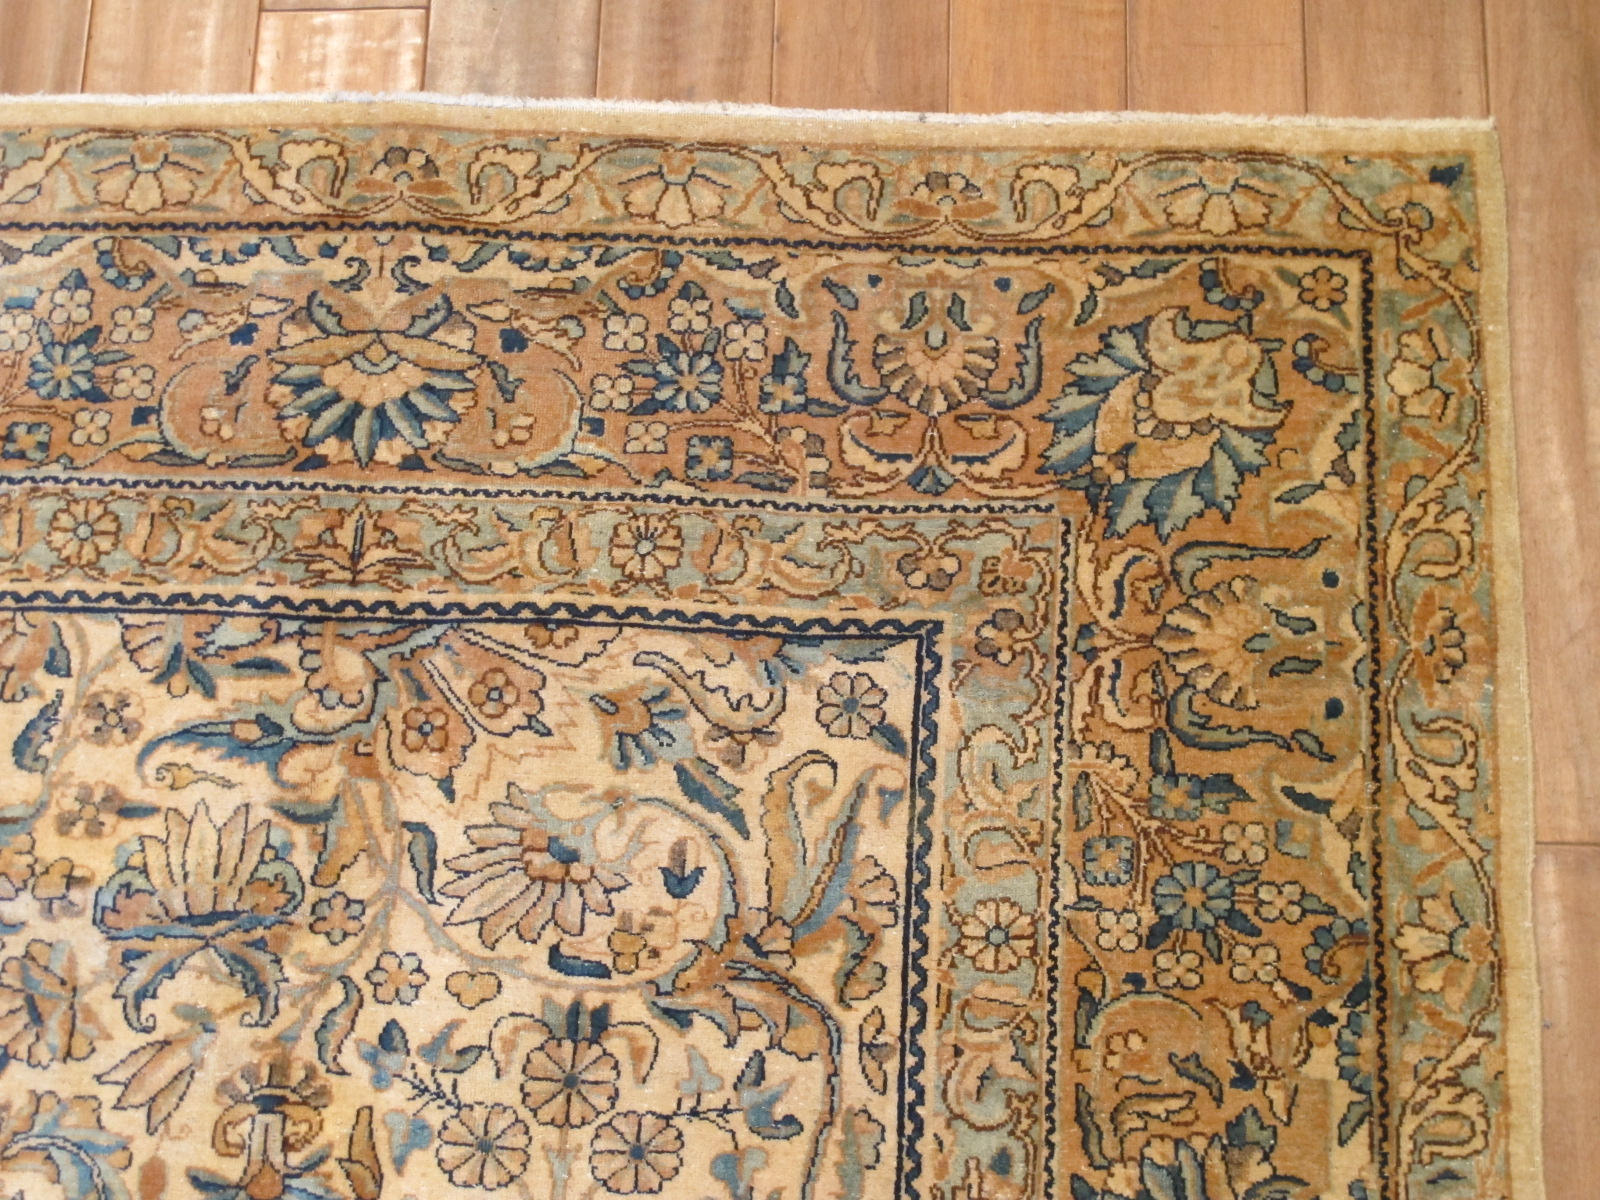 12850 semi antique persian kirman rug 7,11 x 10,8 (3) - Copy